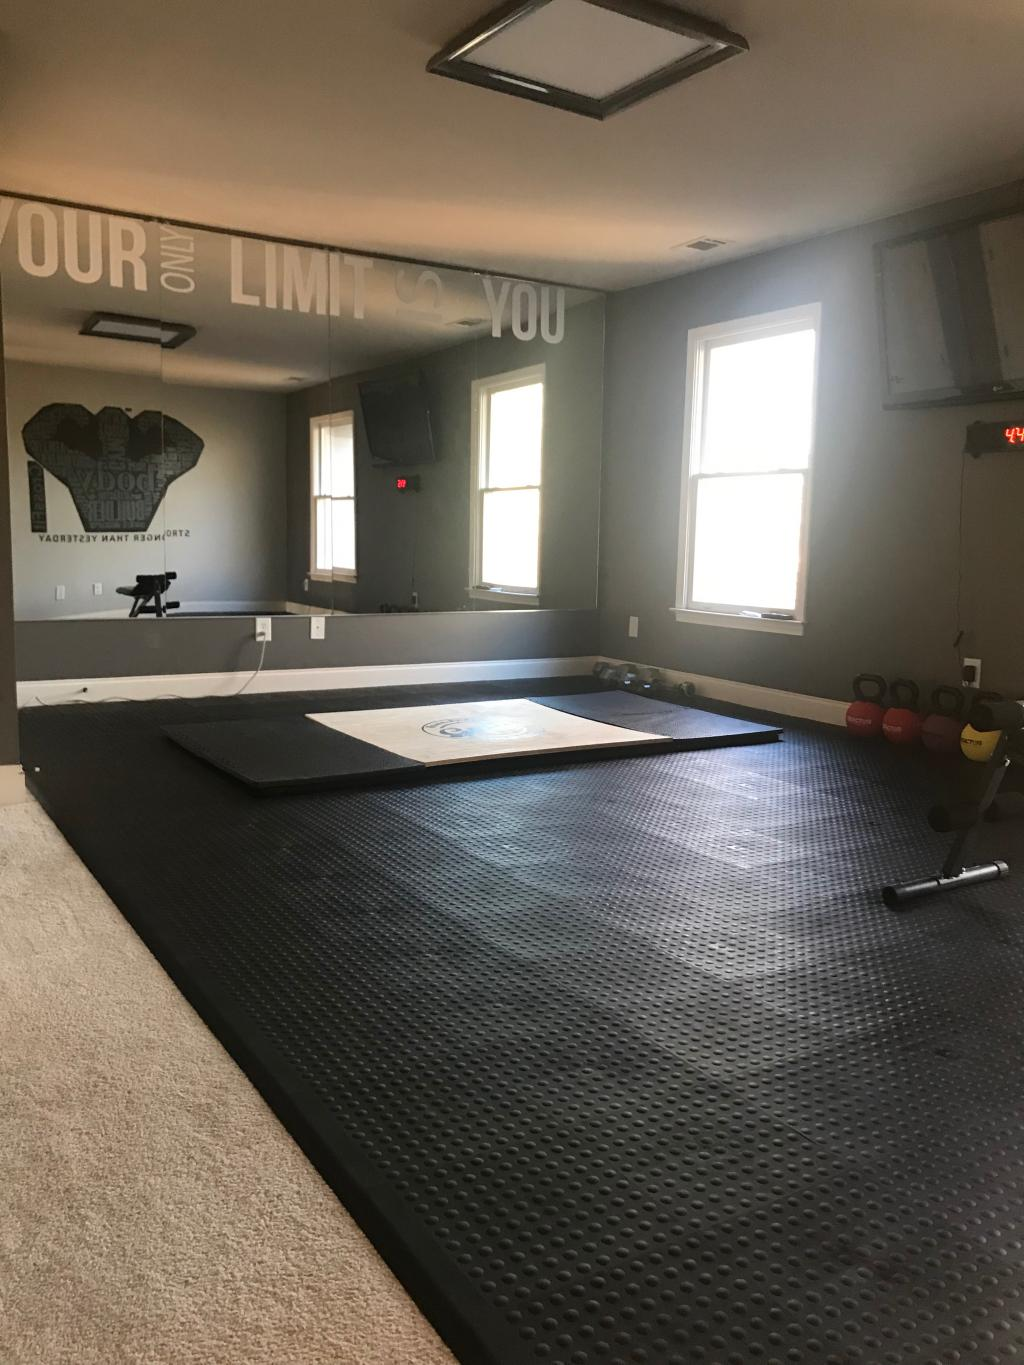 Exercise Room Flooring Workout Room Flooring